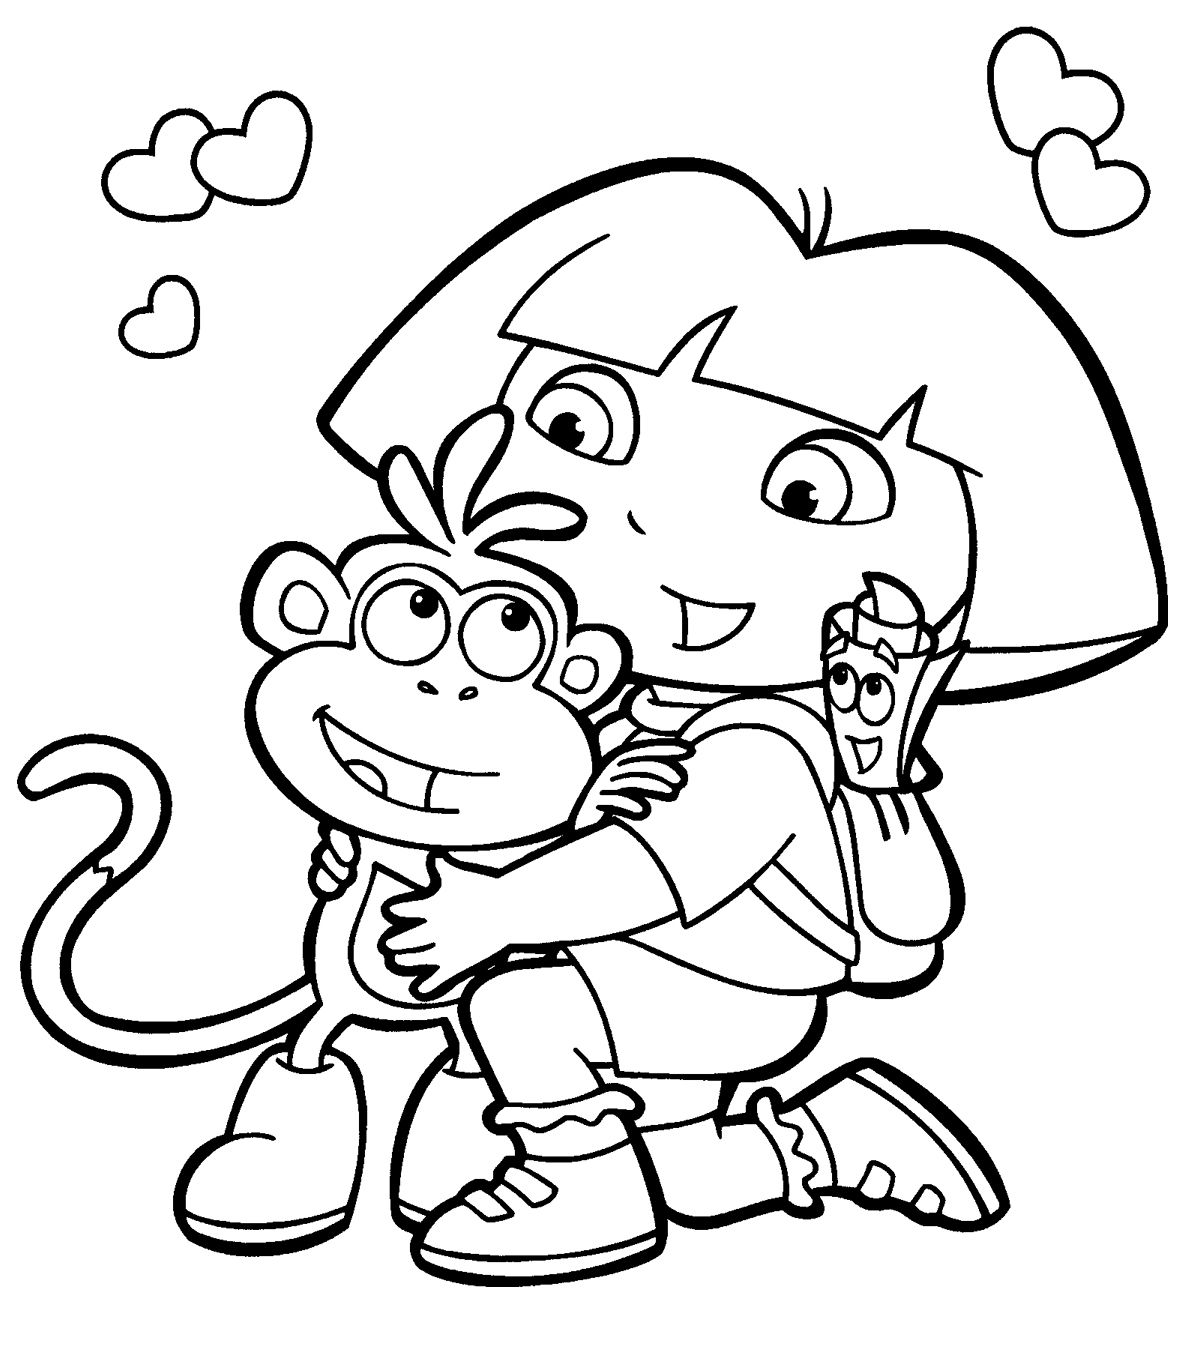 Coloring Book Pages Free Nickjr